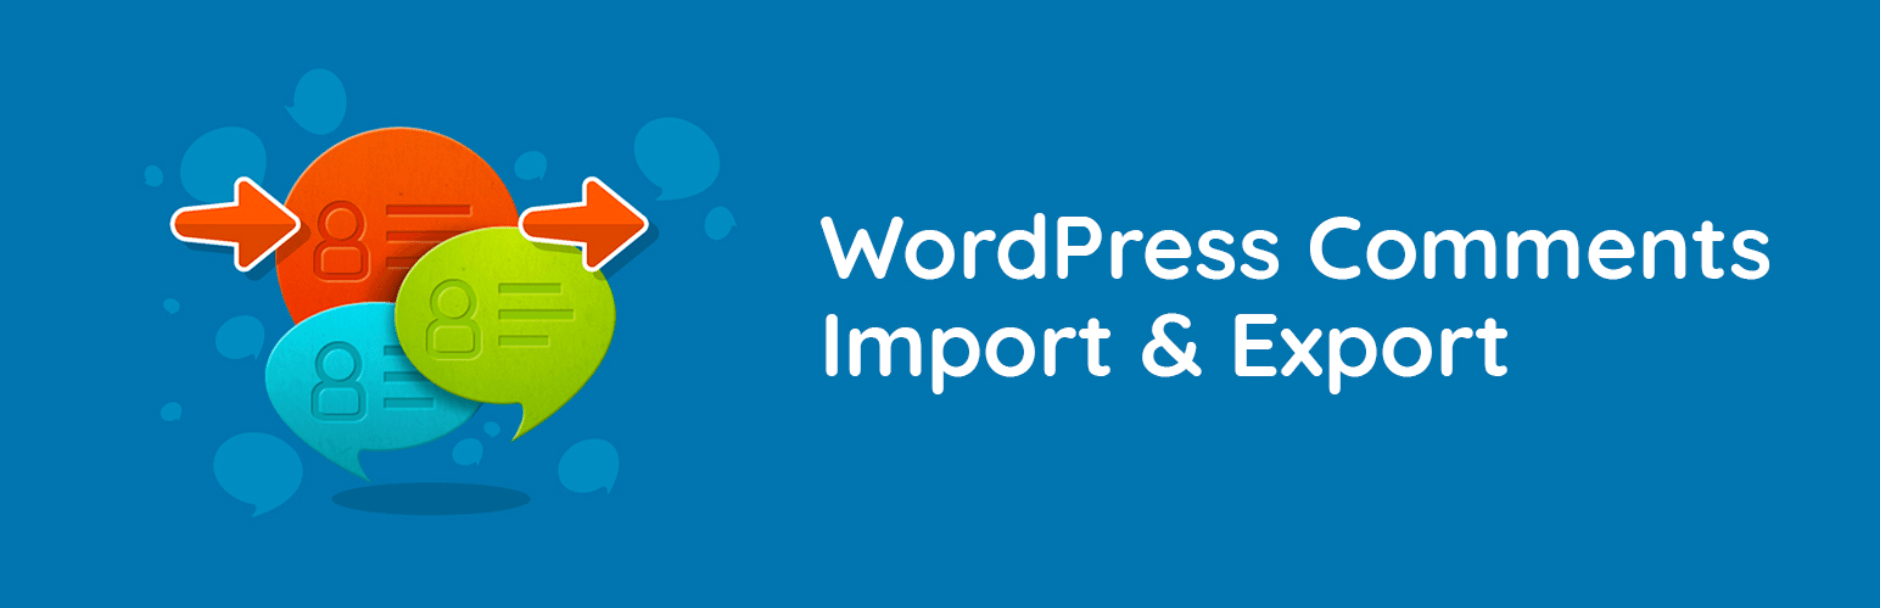 The WordPress Comments Import & Export plugin.